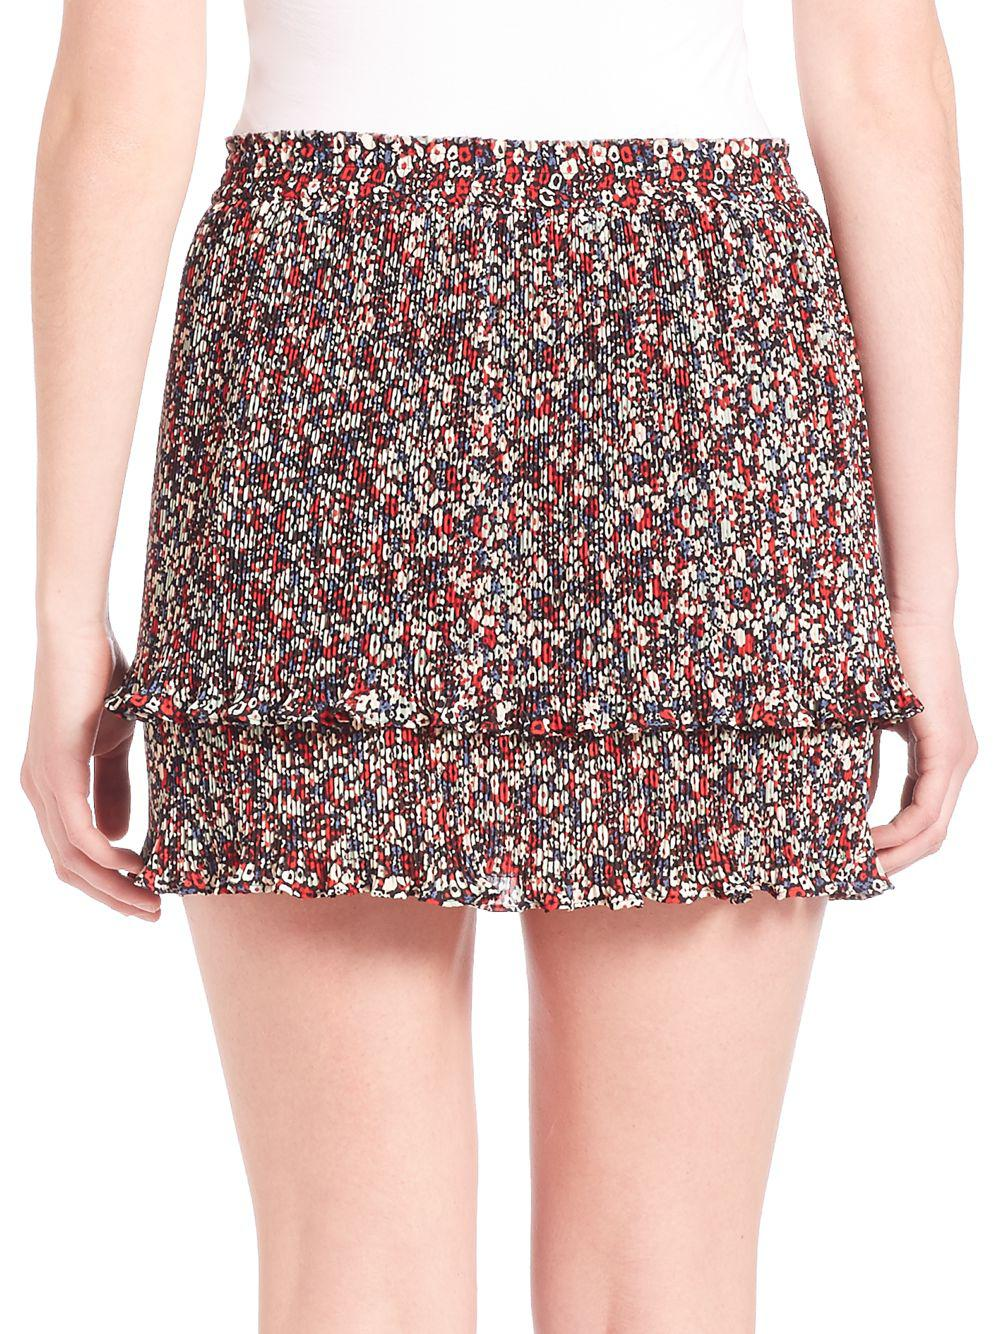 89922da9be 10 Crosby Derek Lam - Multicolor Pleated Two-in-one Camisole & Skirt -.  View fullscreen